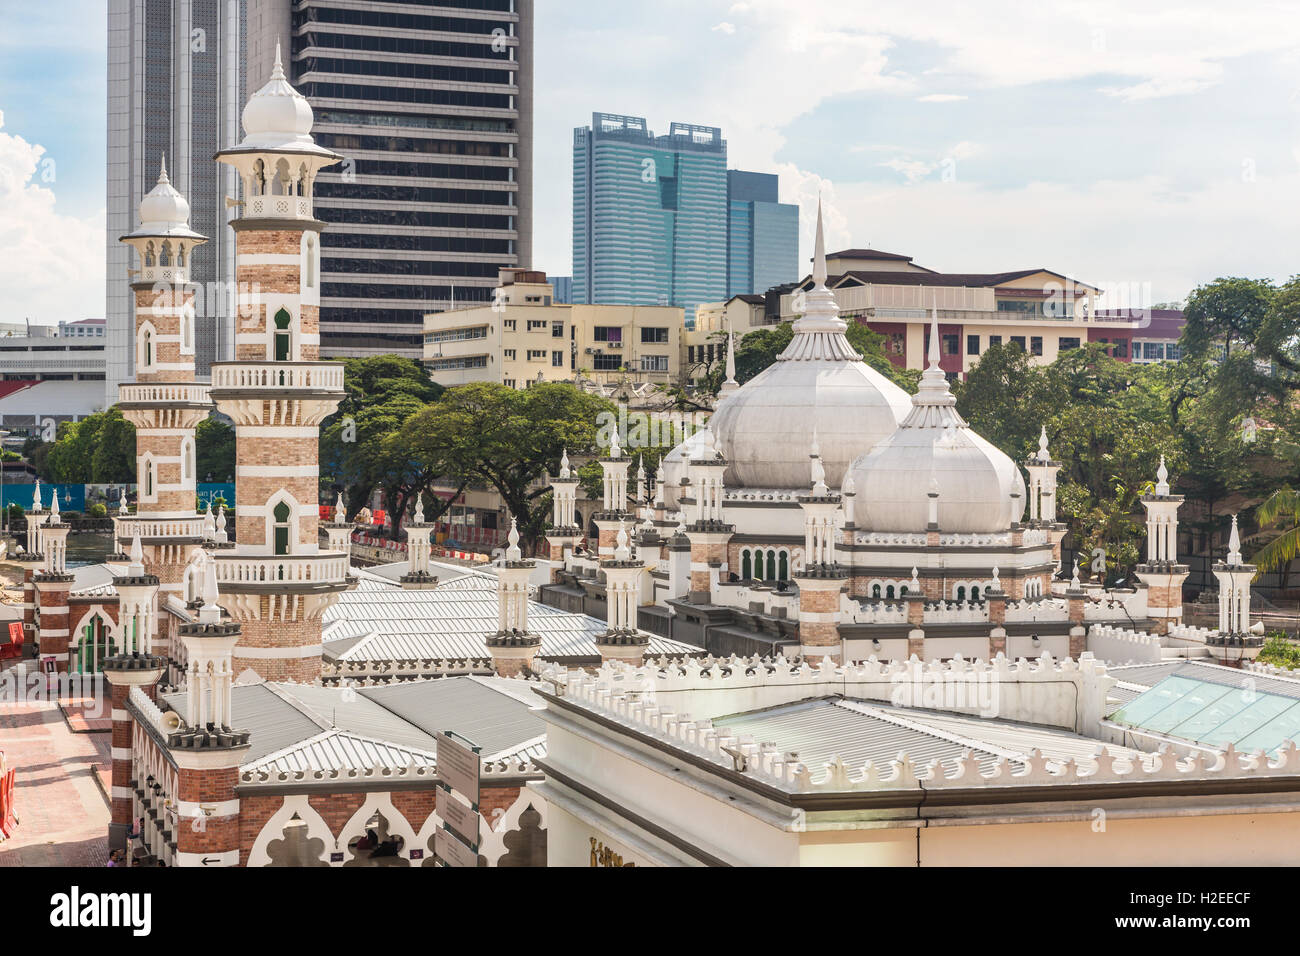 Jama Masjid (or mosque) in the middle of the business district Kuala Lumpur, Malaysia capital city. The city is - Stock Image